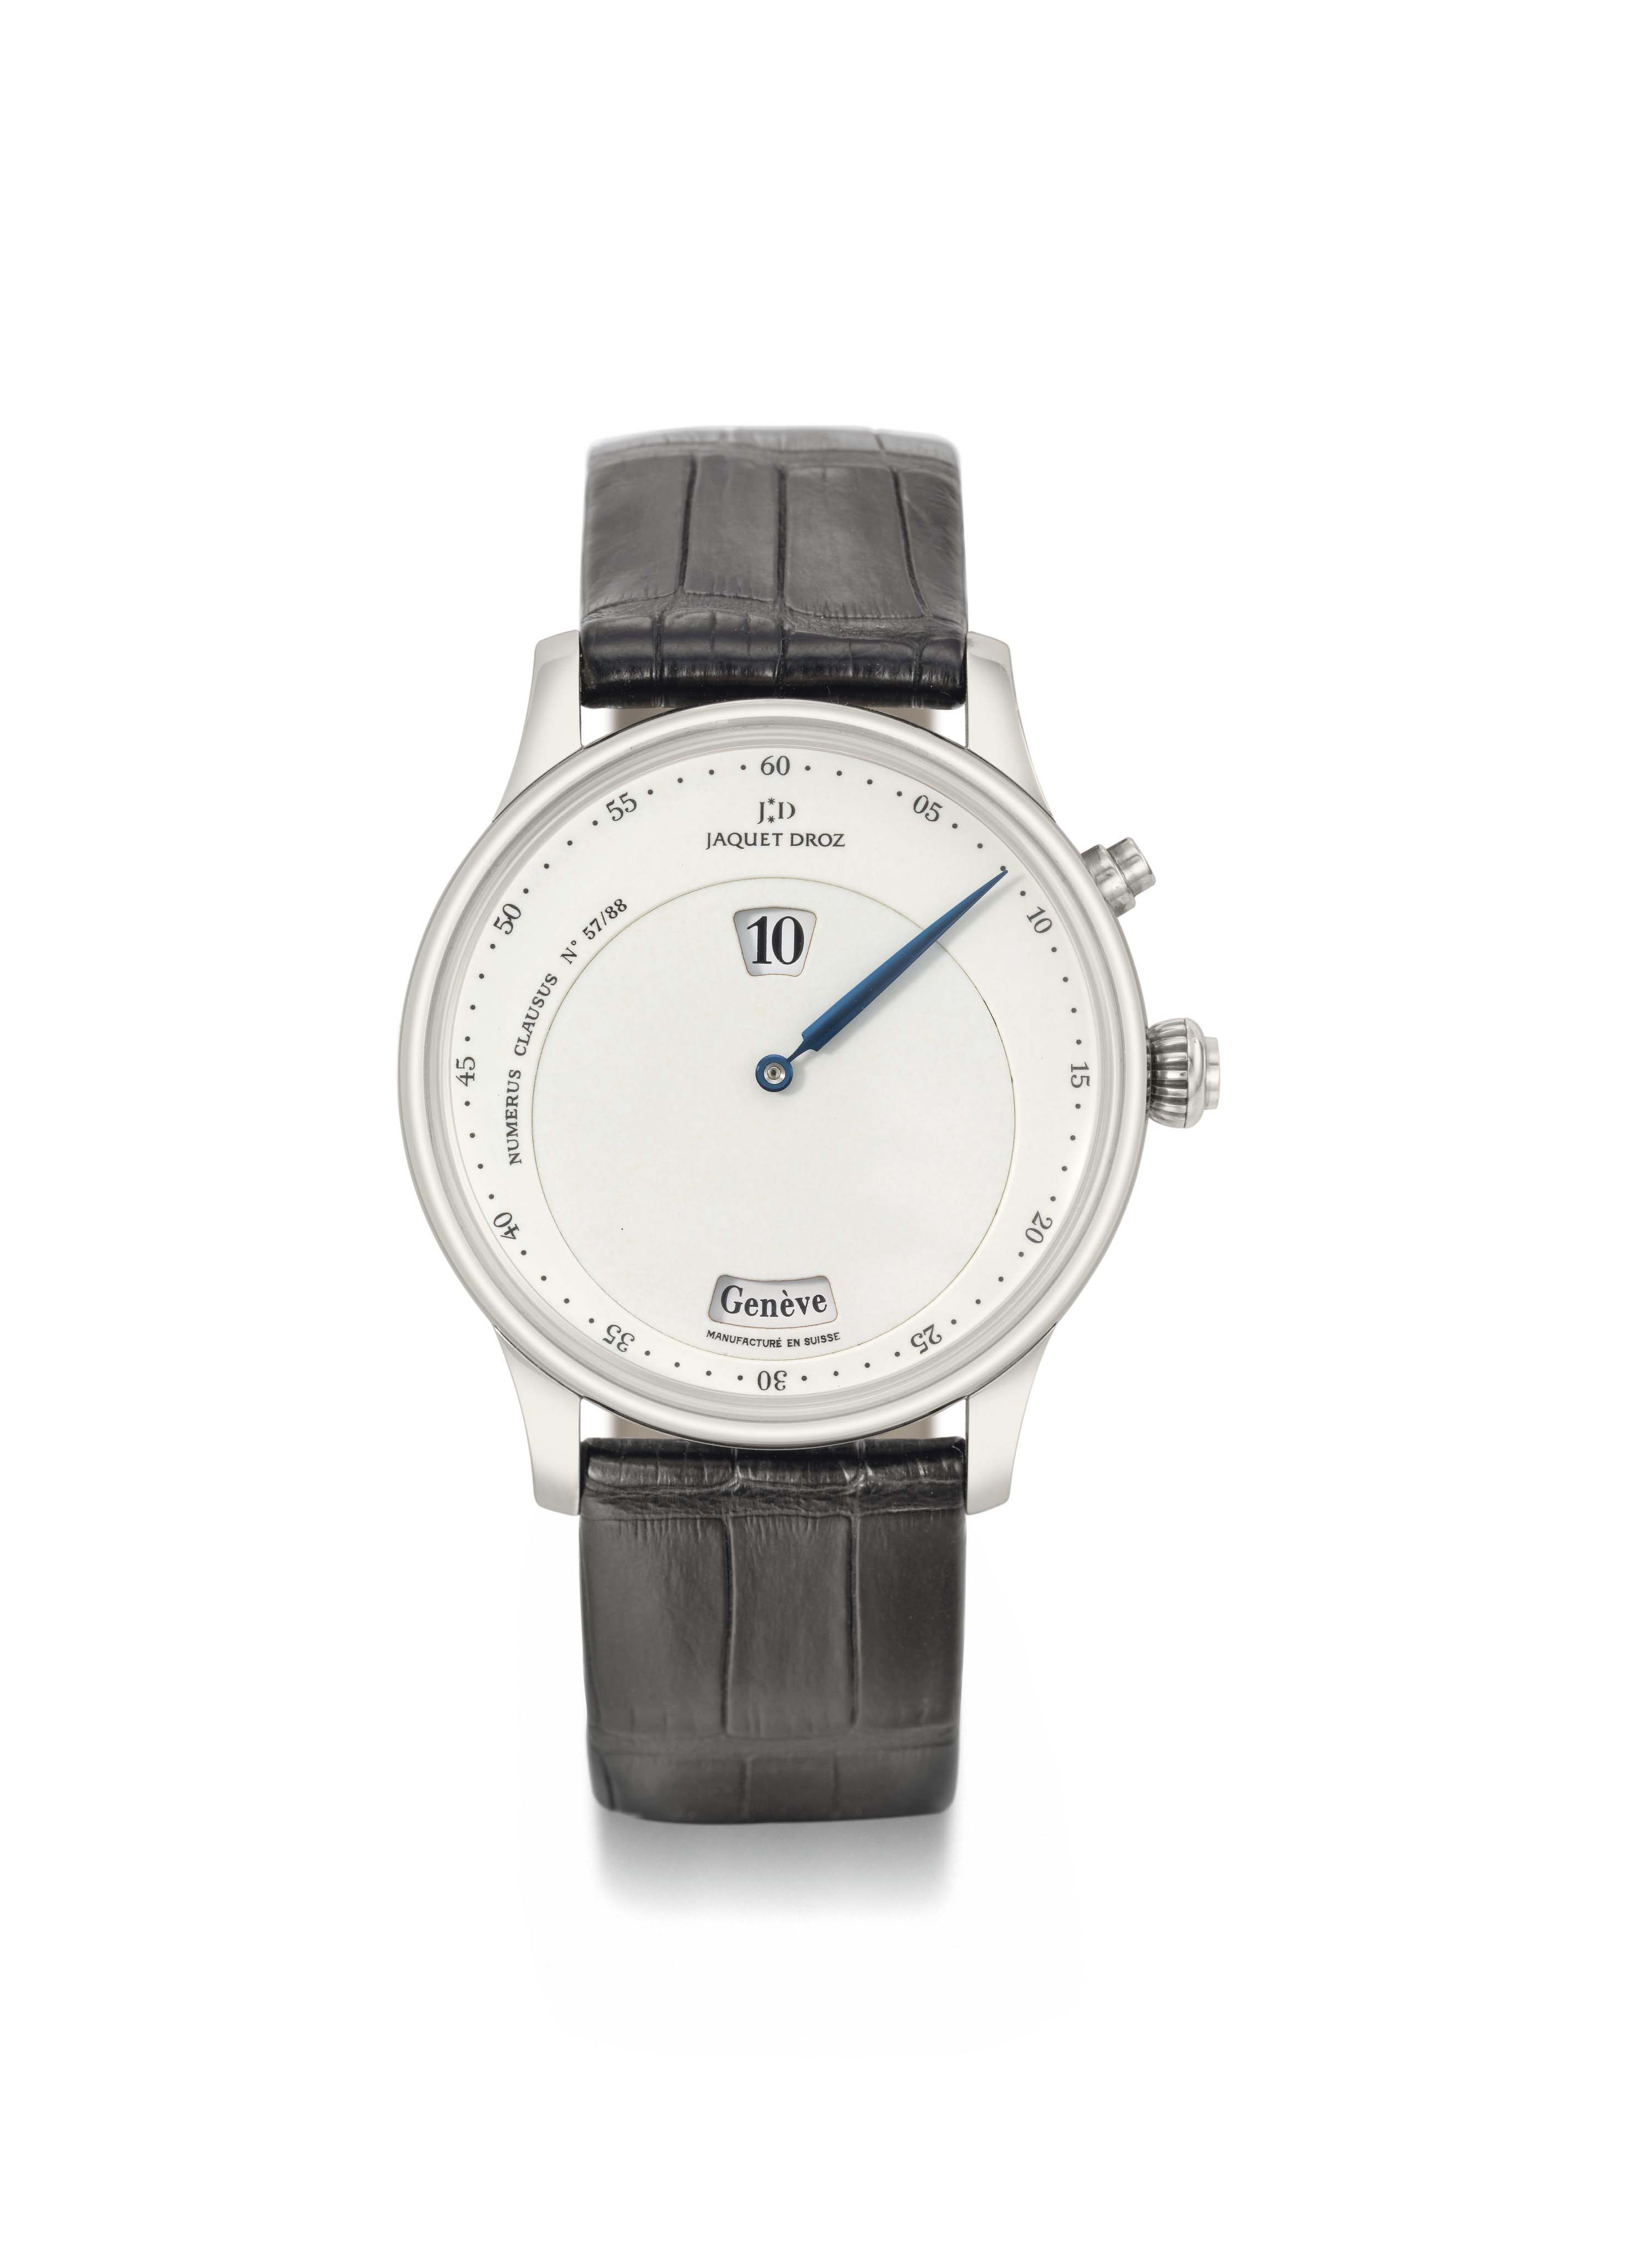 JAQUET DROZ. AN OVERSIZED 18K WHITE GOLD LIMITED EDITION AUTOMATIC JUMP HOUR WORLD TIME WRISTWATCH WITH ENAMEL REGULATOR DIAL